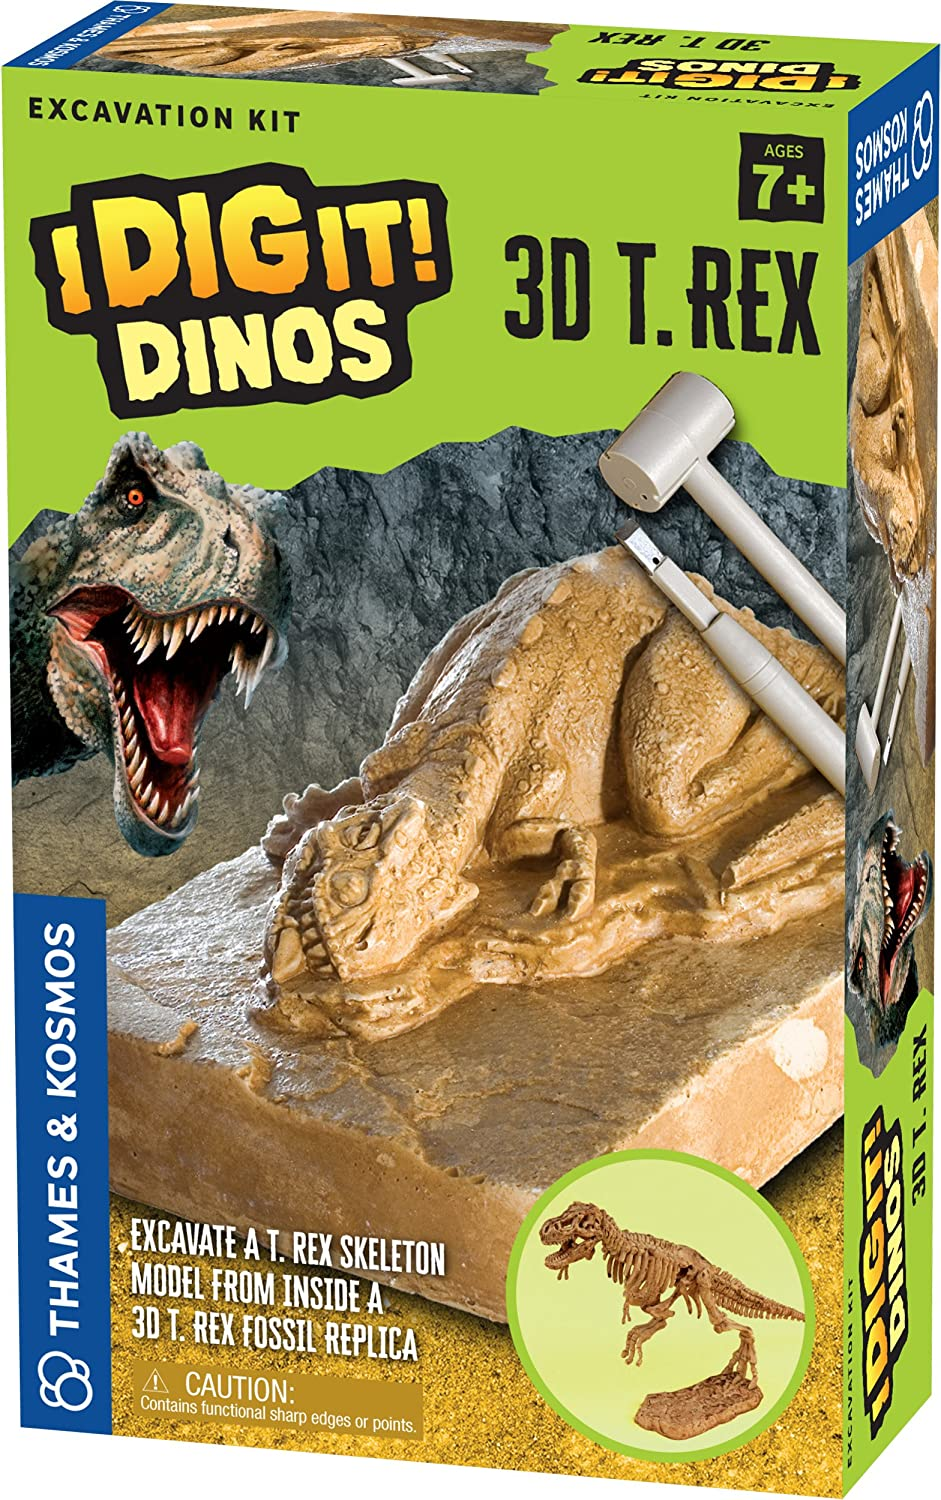 Thames & Kosmos I Dig It Dinos-3D T. Rex Excavation Kit Science Experiment 657550